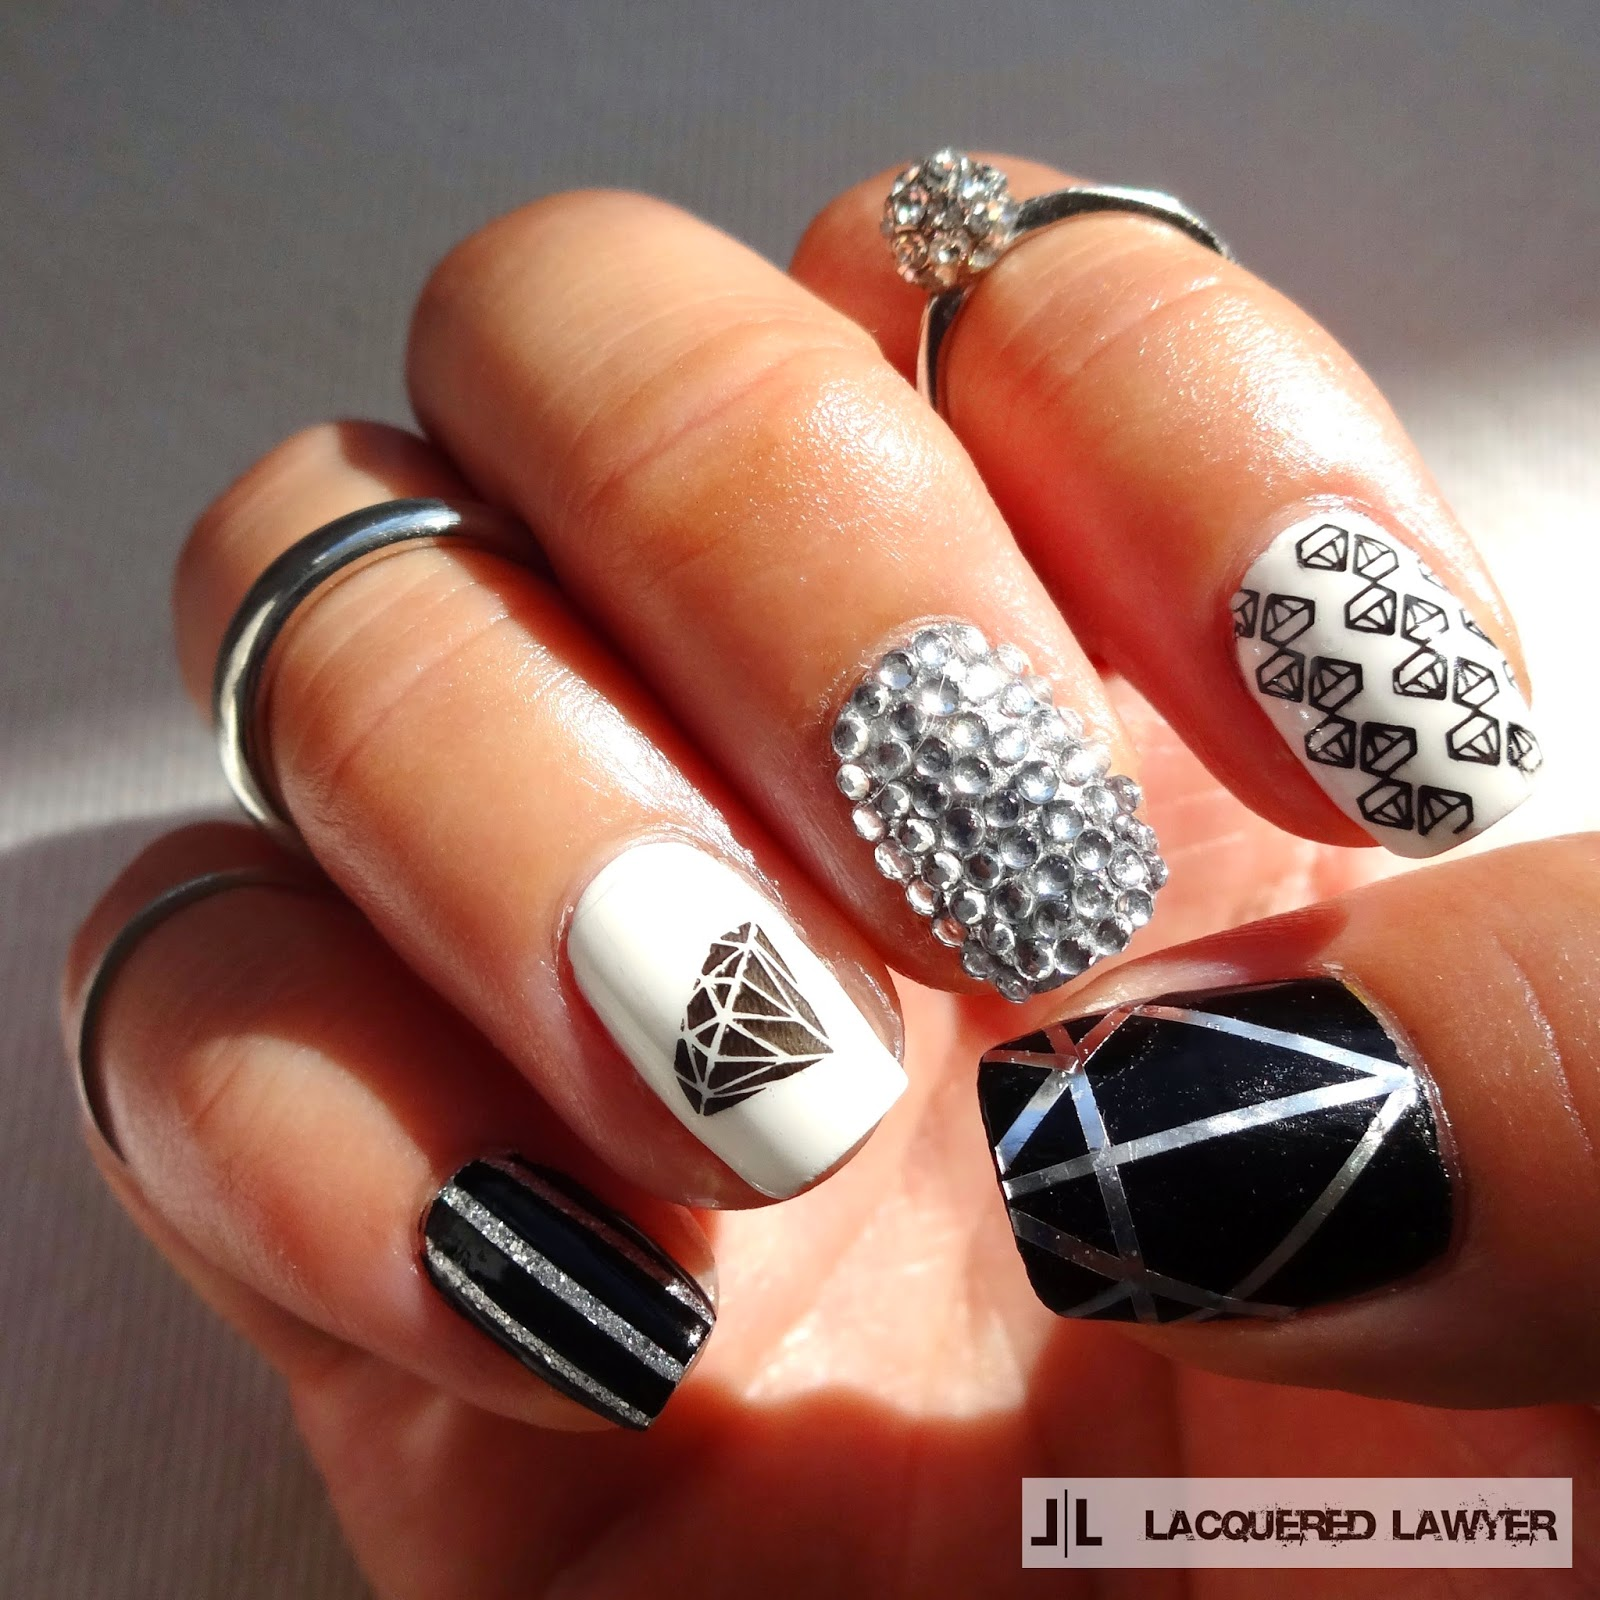 Lacquered Lawyer | Nail Art Blog: Shine Bright Like A Diamond